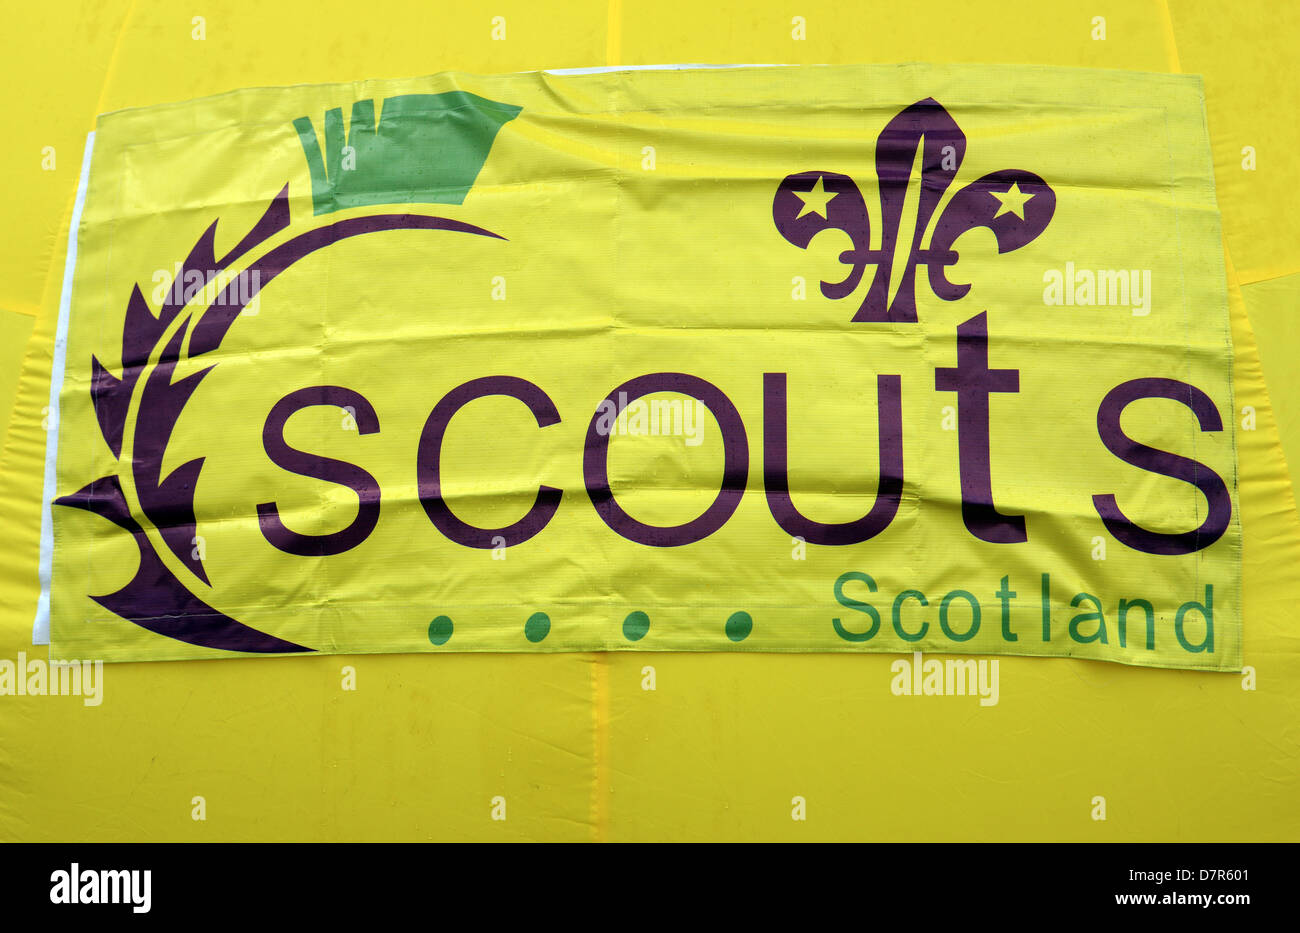 Scouts Scotland sign on a yellow background - Stock Image